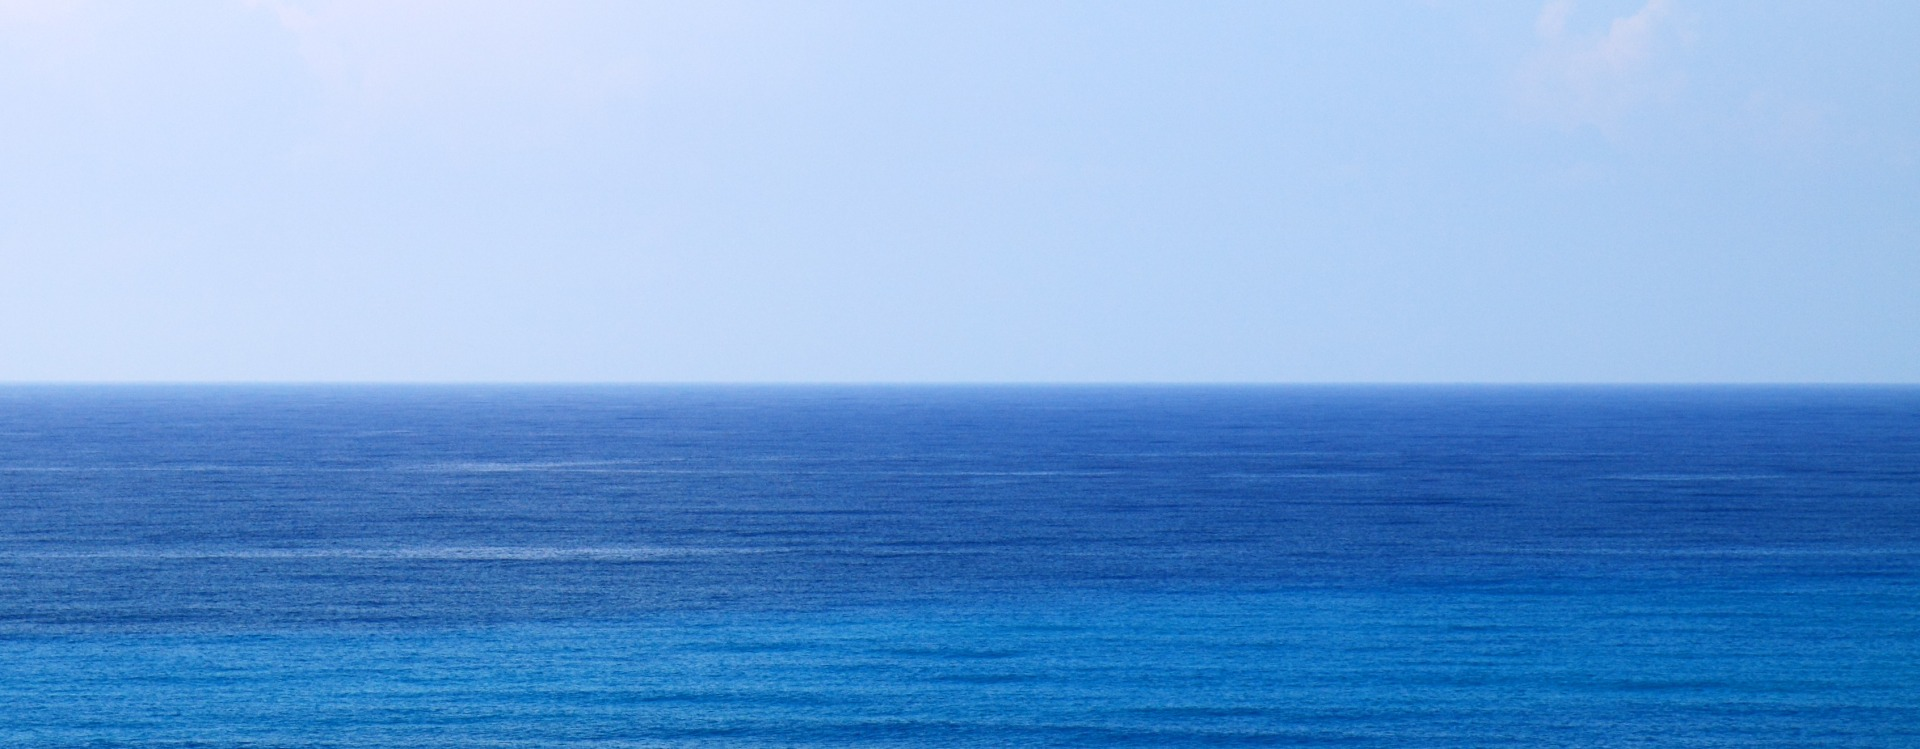 cropped-blue-sea-water-backround1.jpg